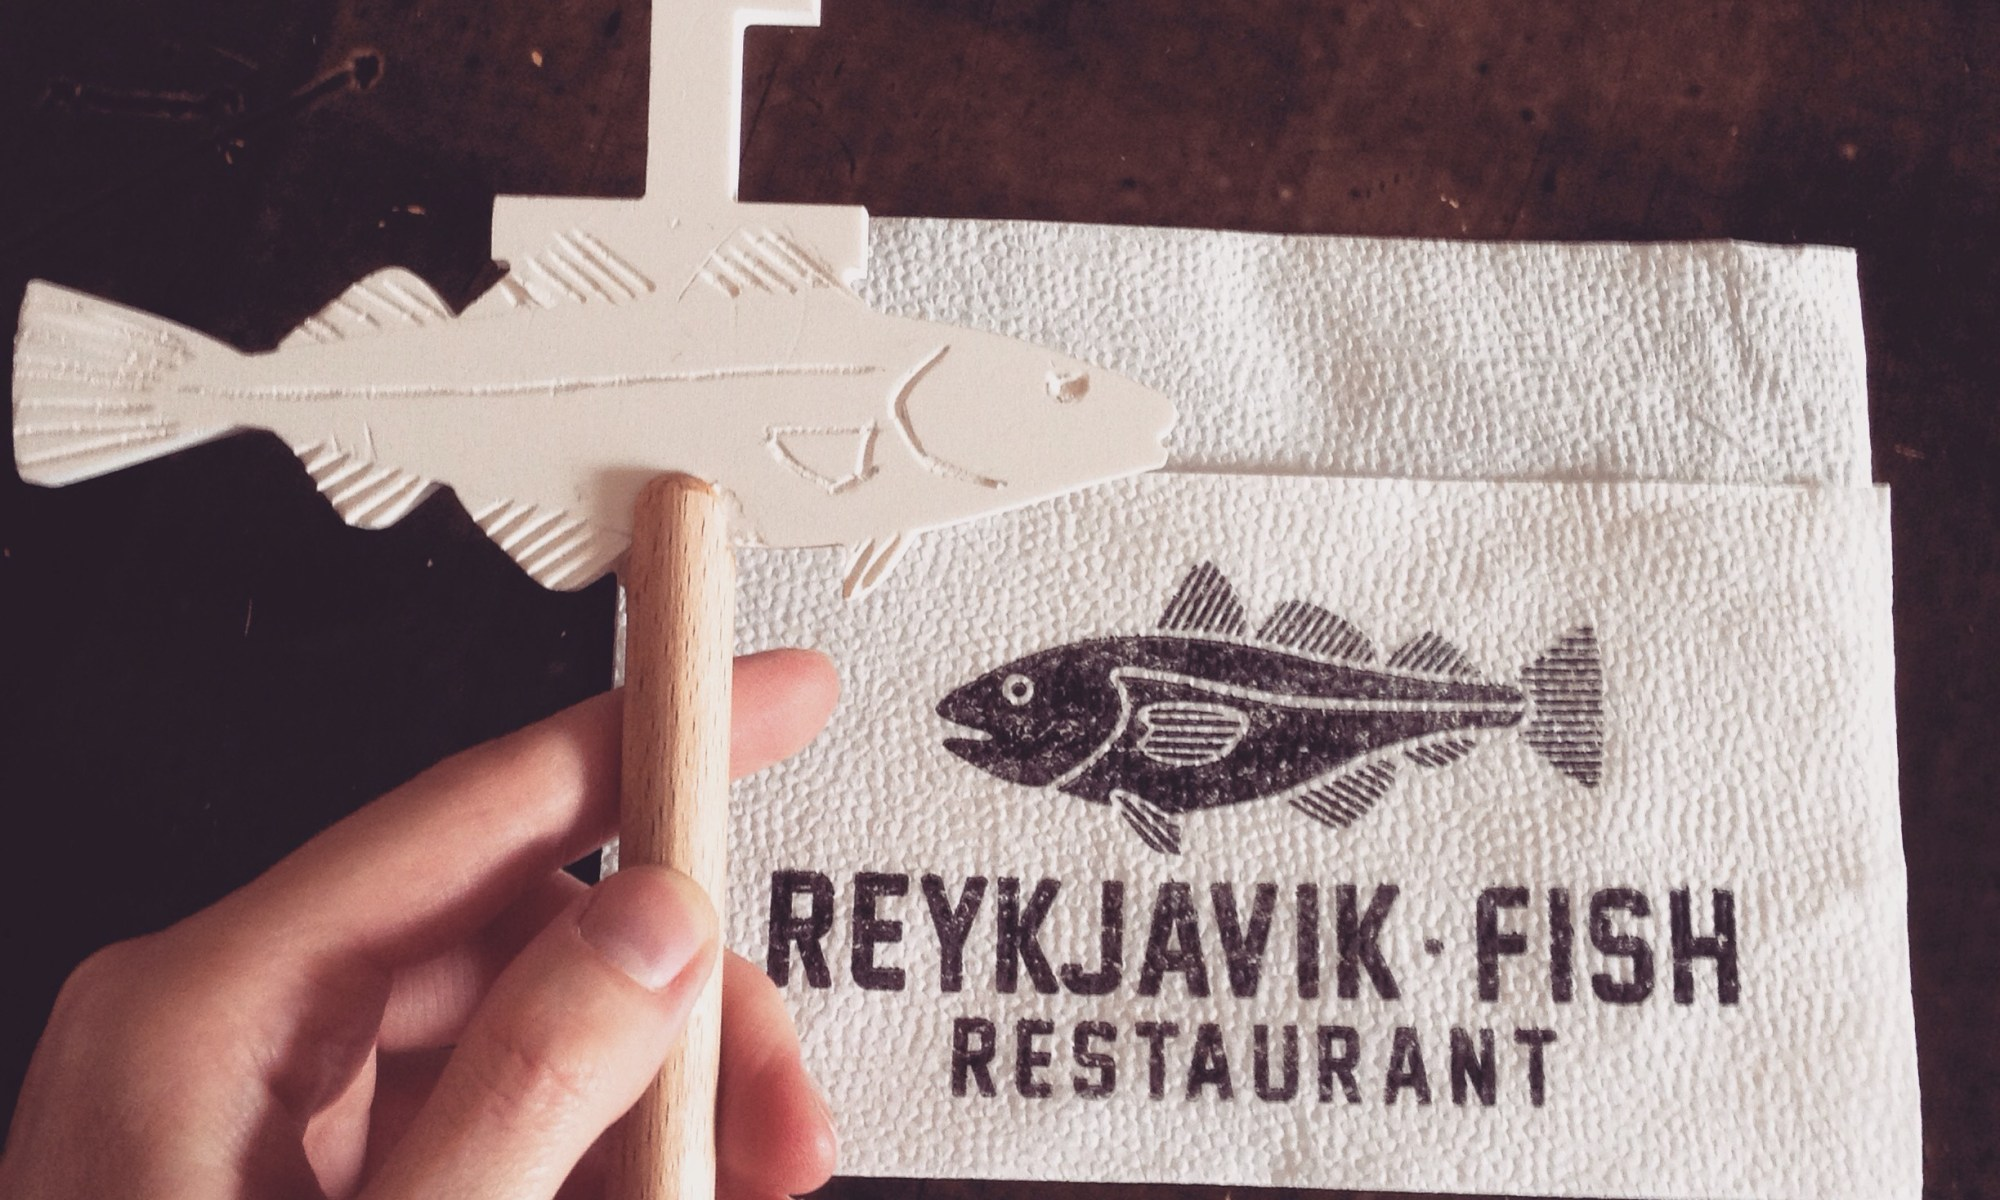 Reykjavik Fish Restaurant napkin and table number in the shape of a fish